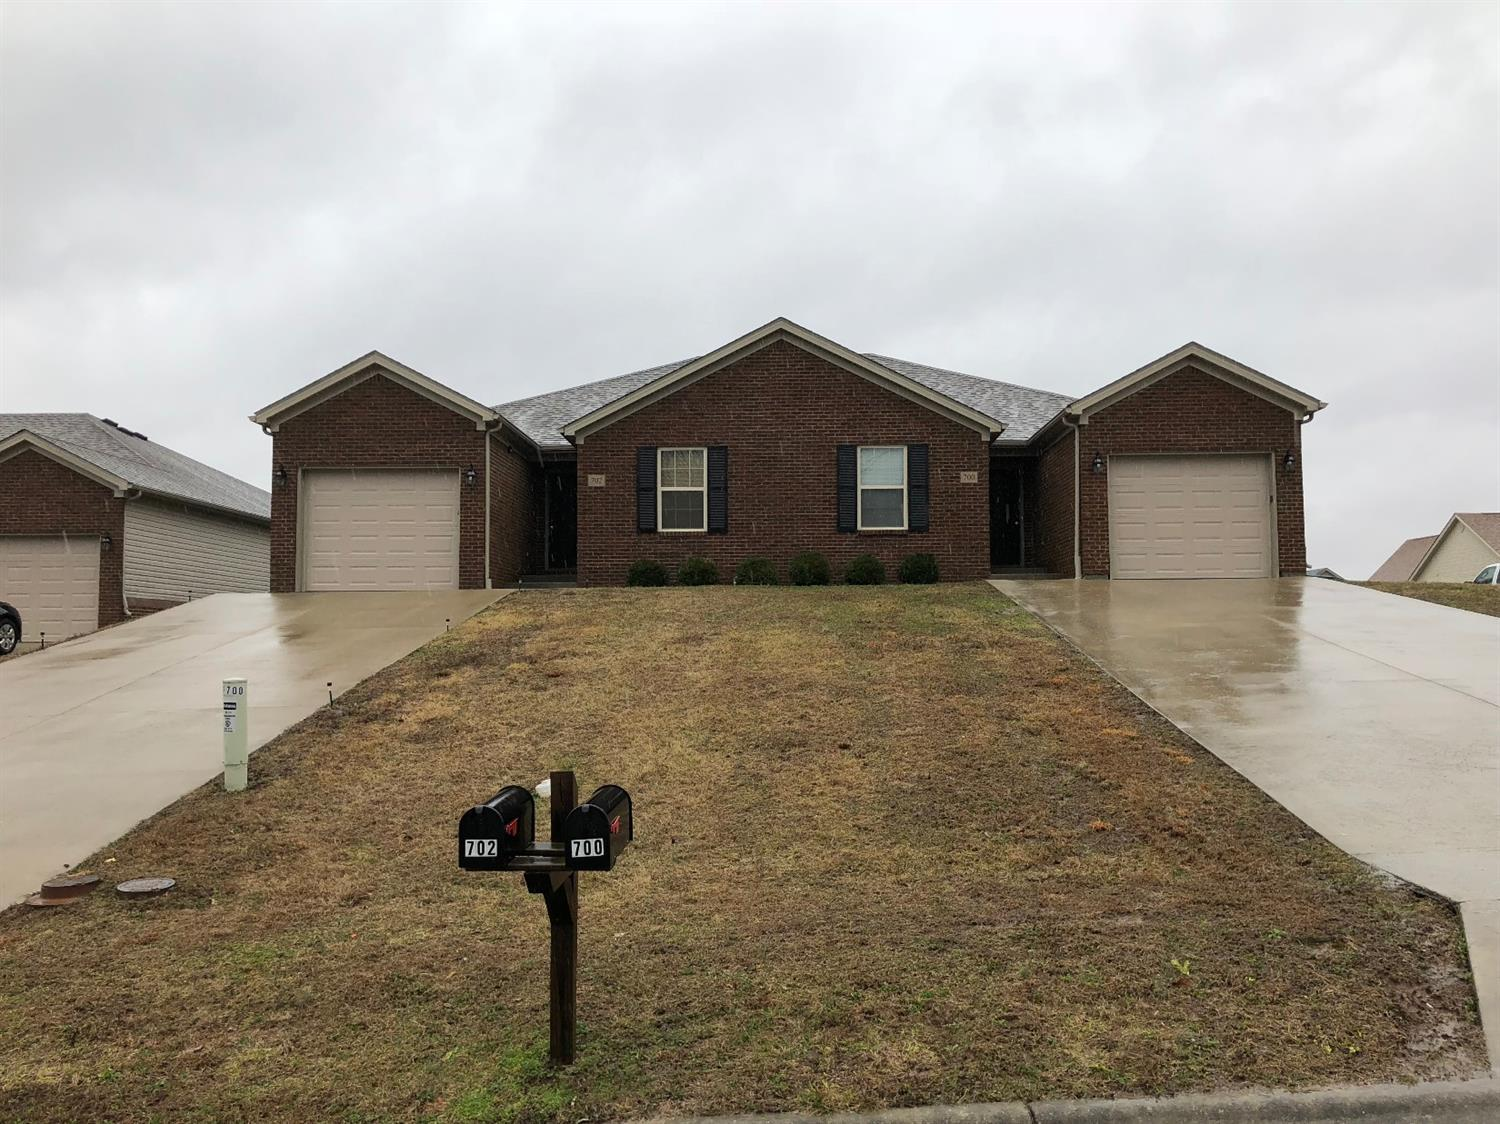 702 Chatham Ct, Richmond, KY 40475 For Rent | Trulia